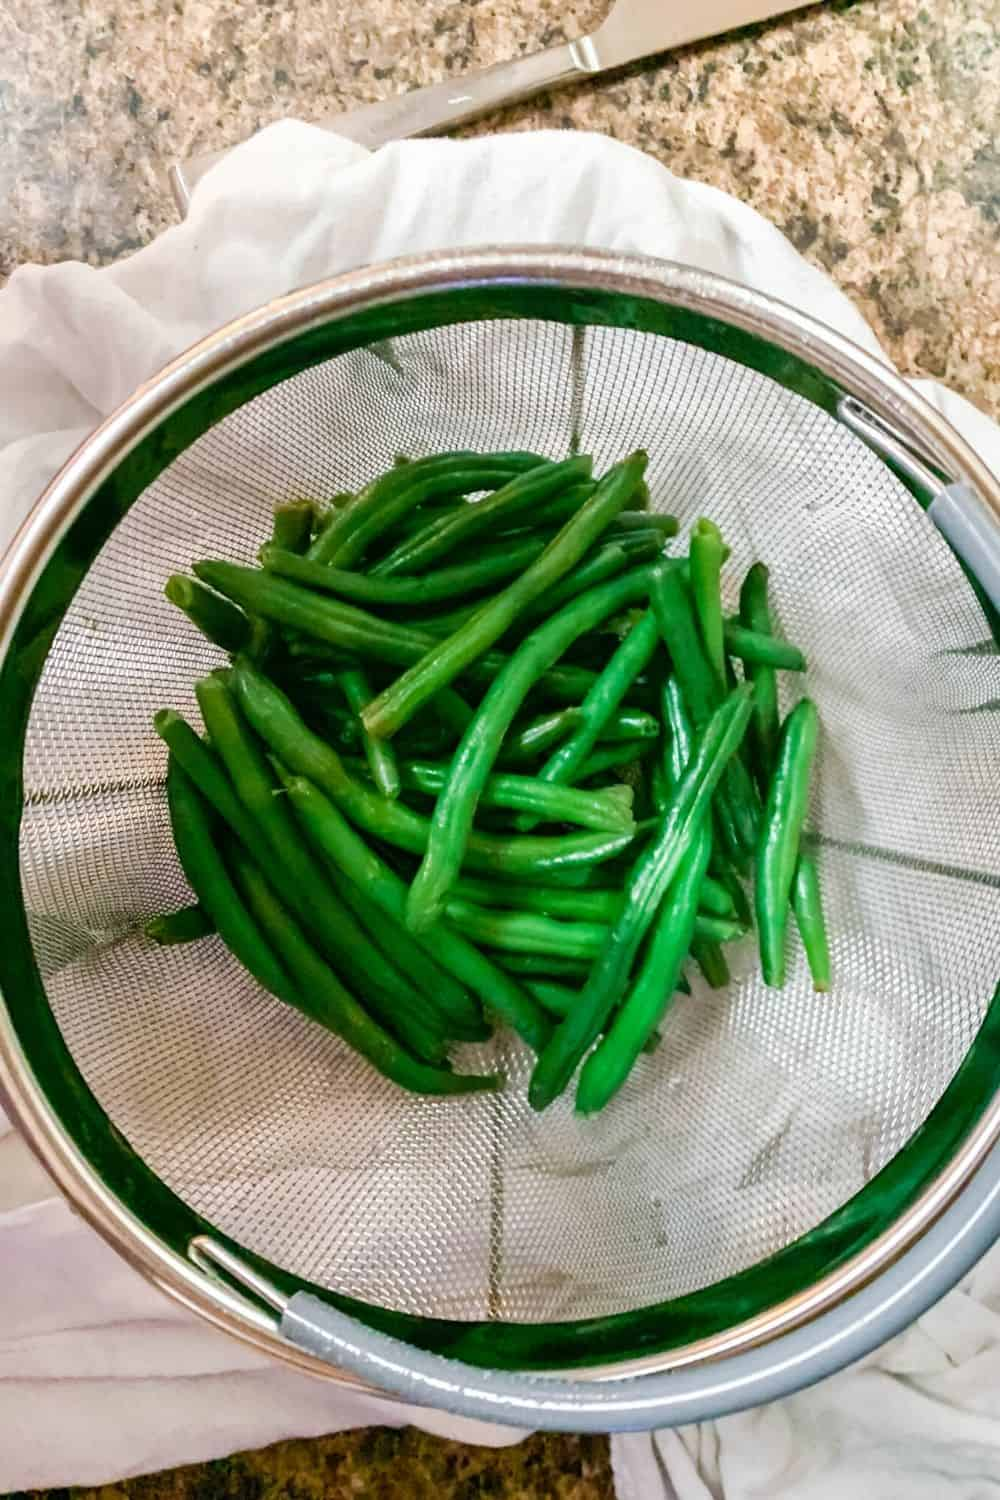 freshly cooked green beans in a steamer basket on a white kitchen towel